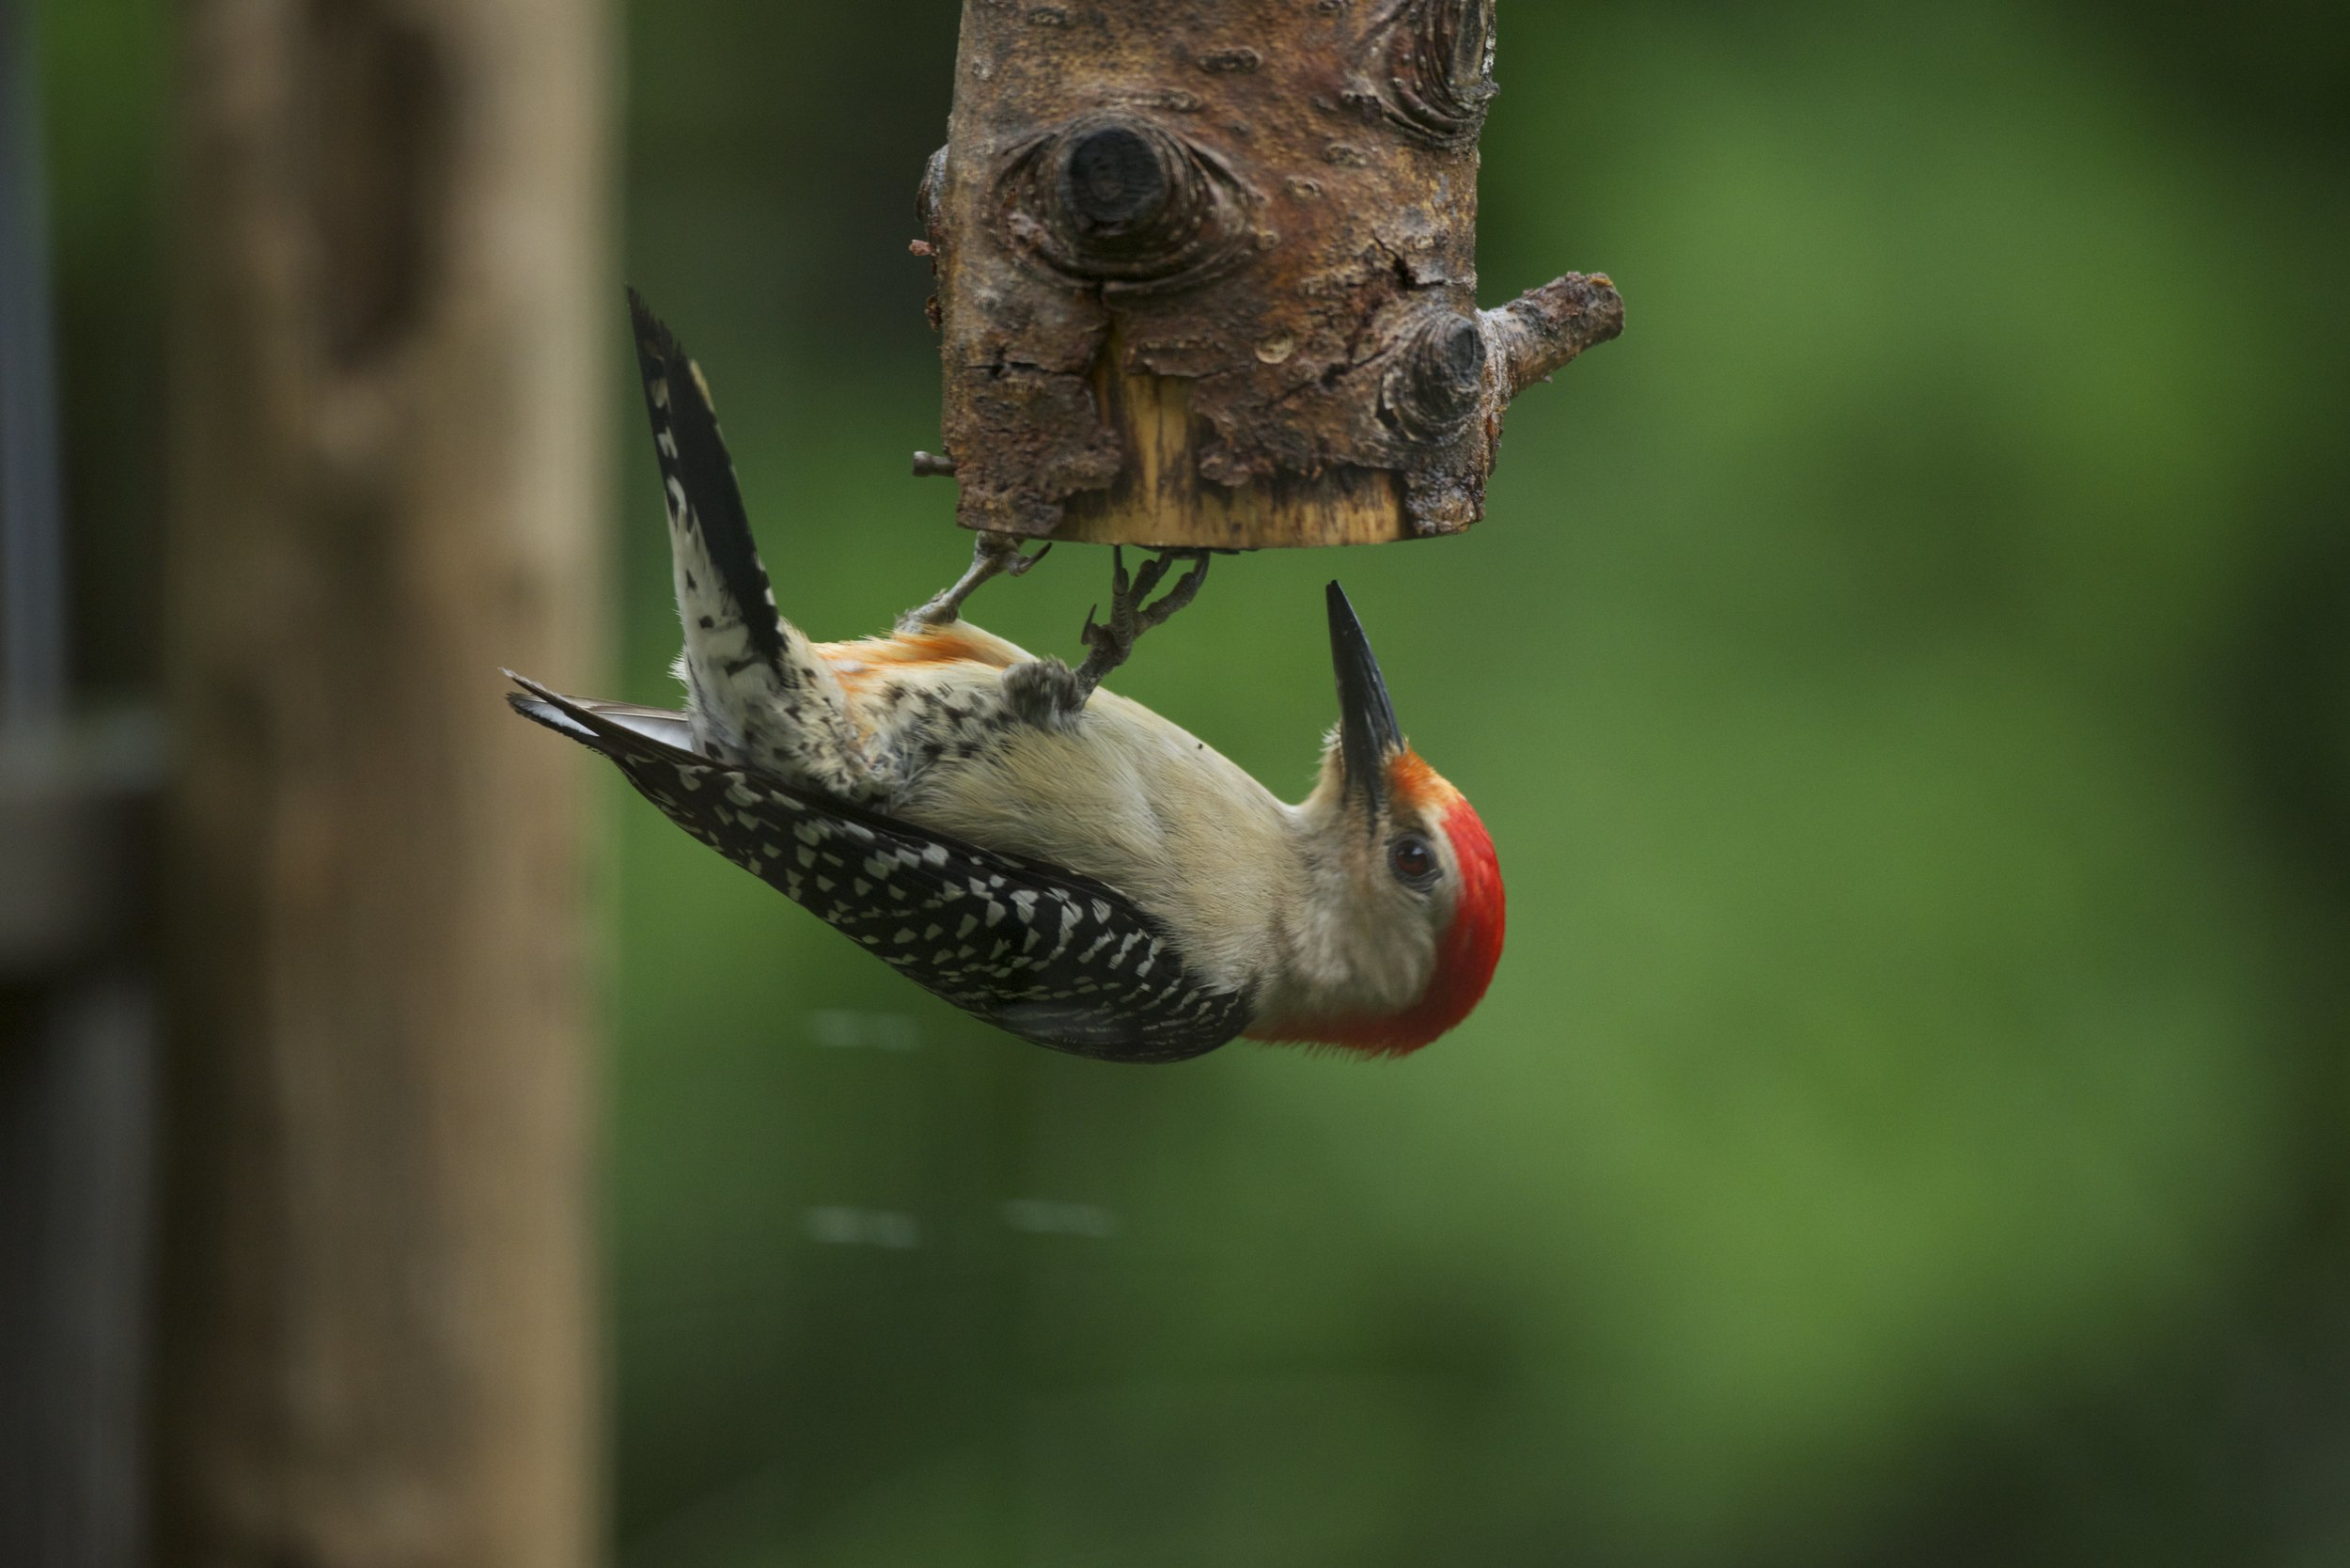 Many birds such as this Red-bellied Woodpecker feed very naturally by hanging upside down to use this feeder.